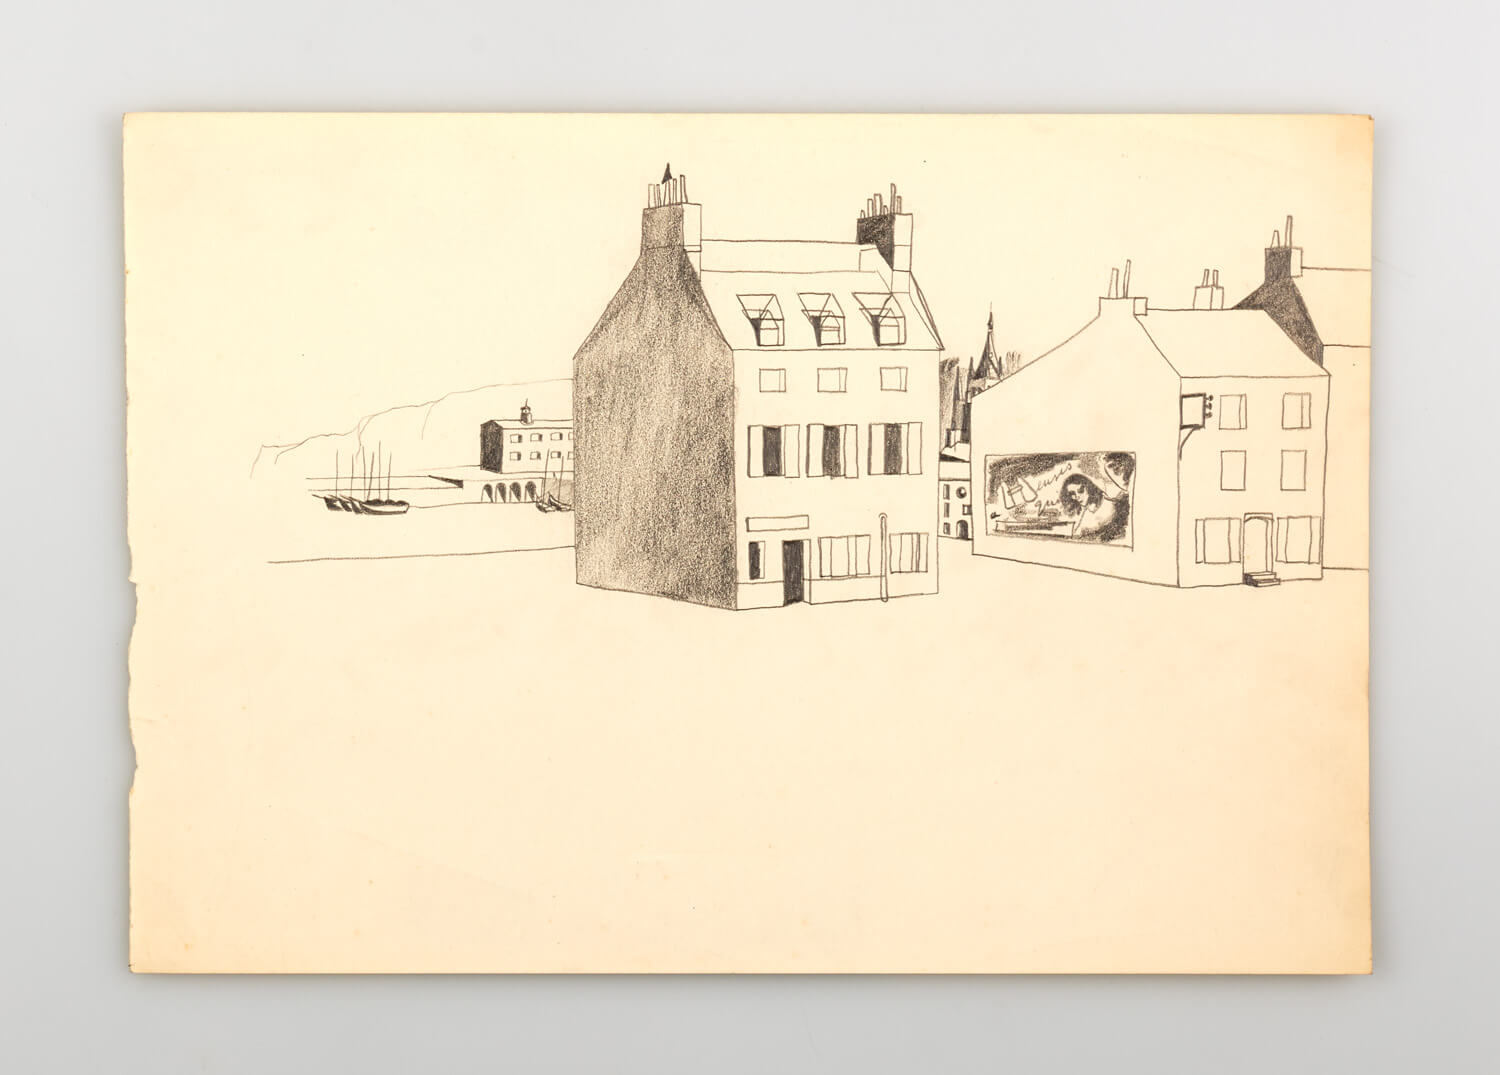 JB306 - Drawing, France - 1945 - 25.5 x 37 cm - Pencil